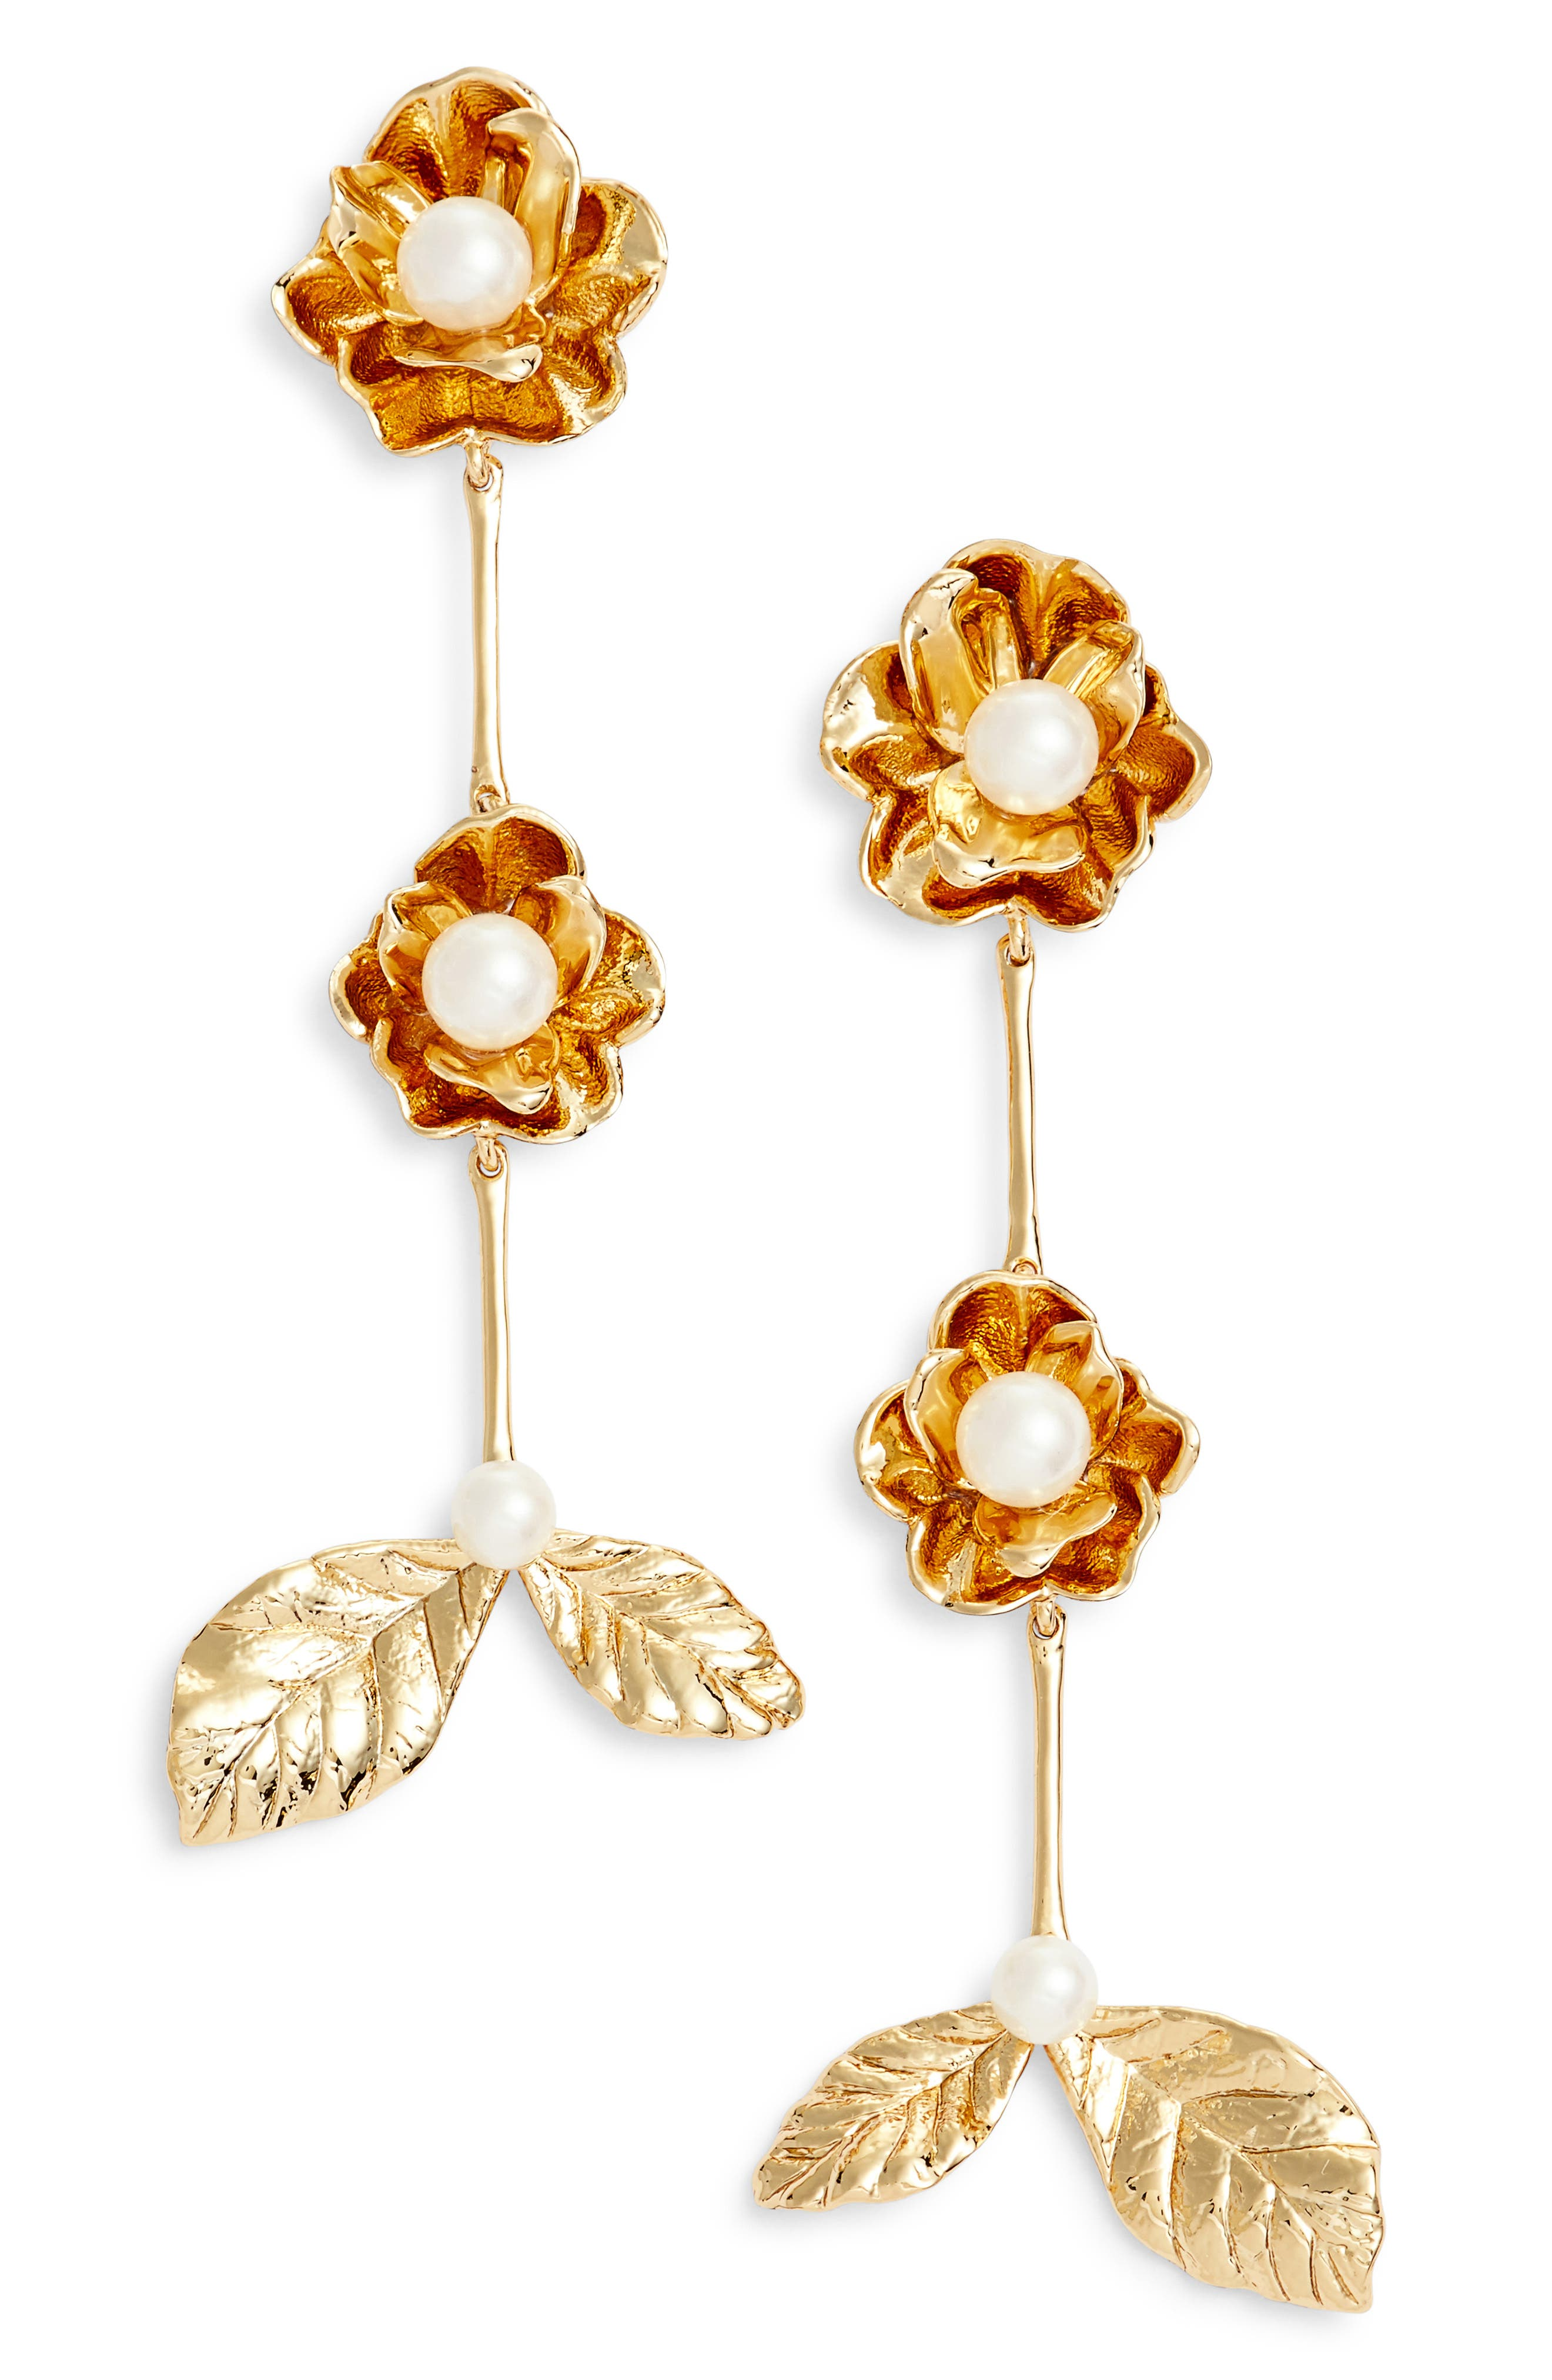 kate spade floral imitation pearl drop earrings,                         Main,                         color, Gold